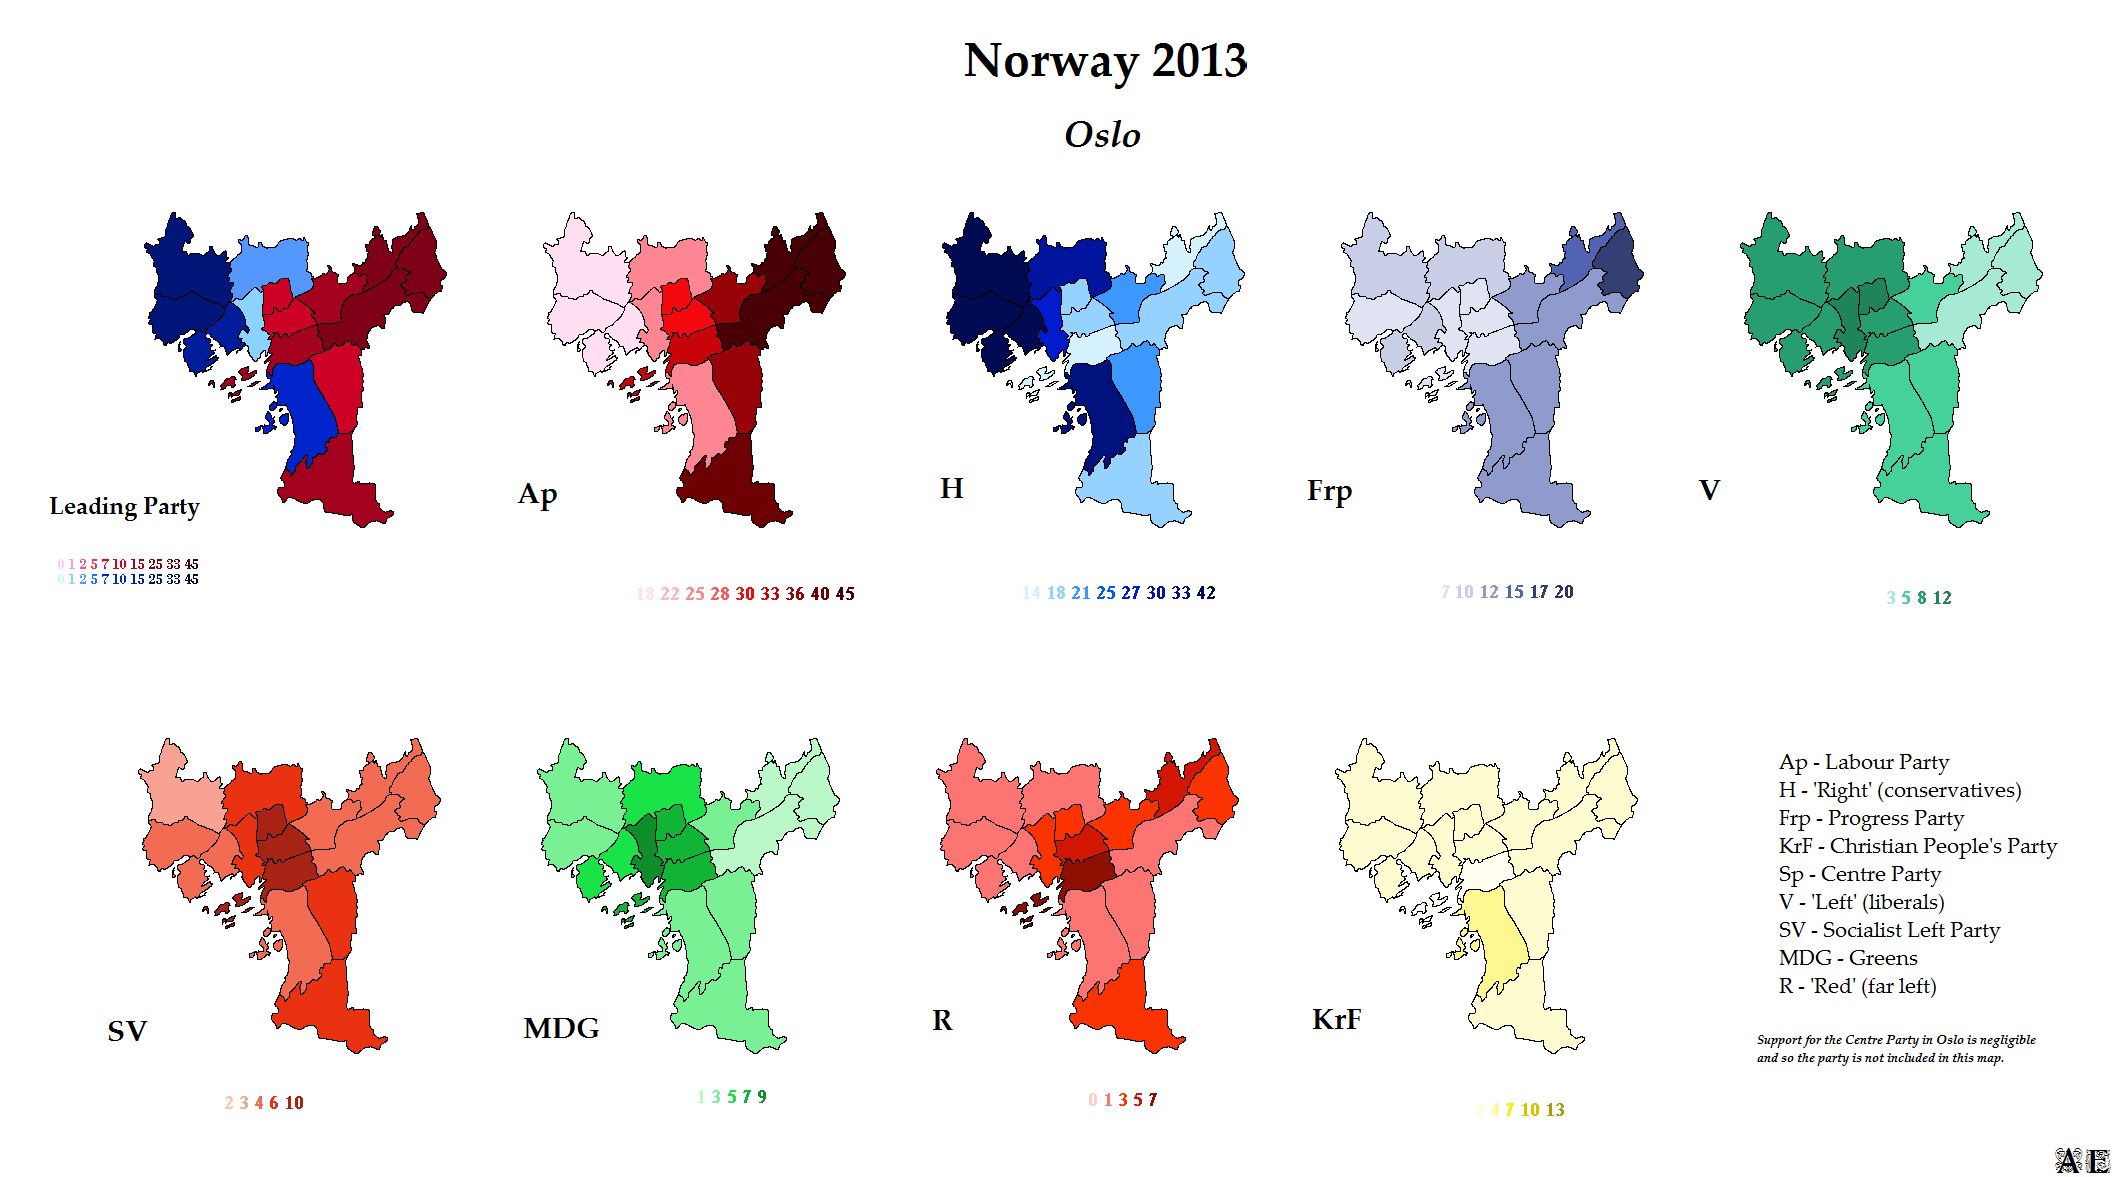 Norway World Elections - Norway election map